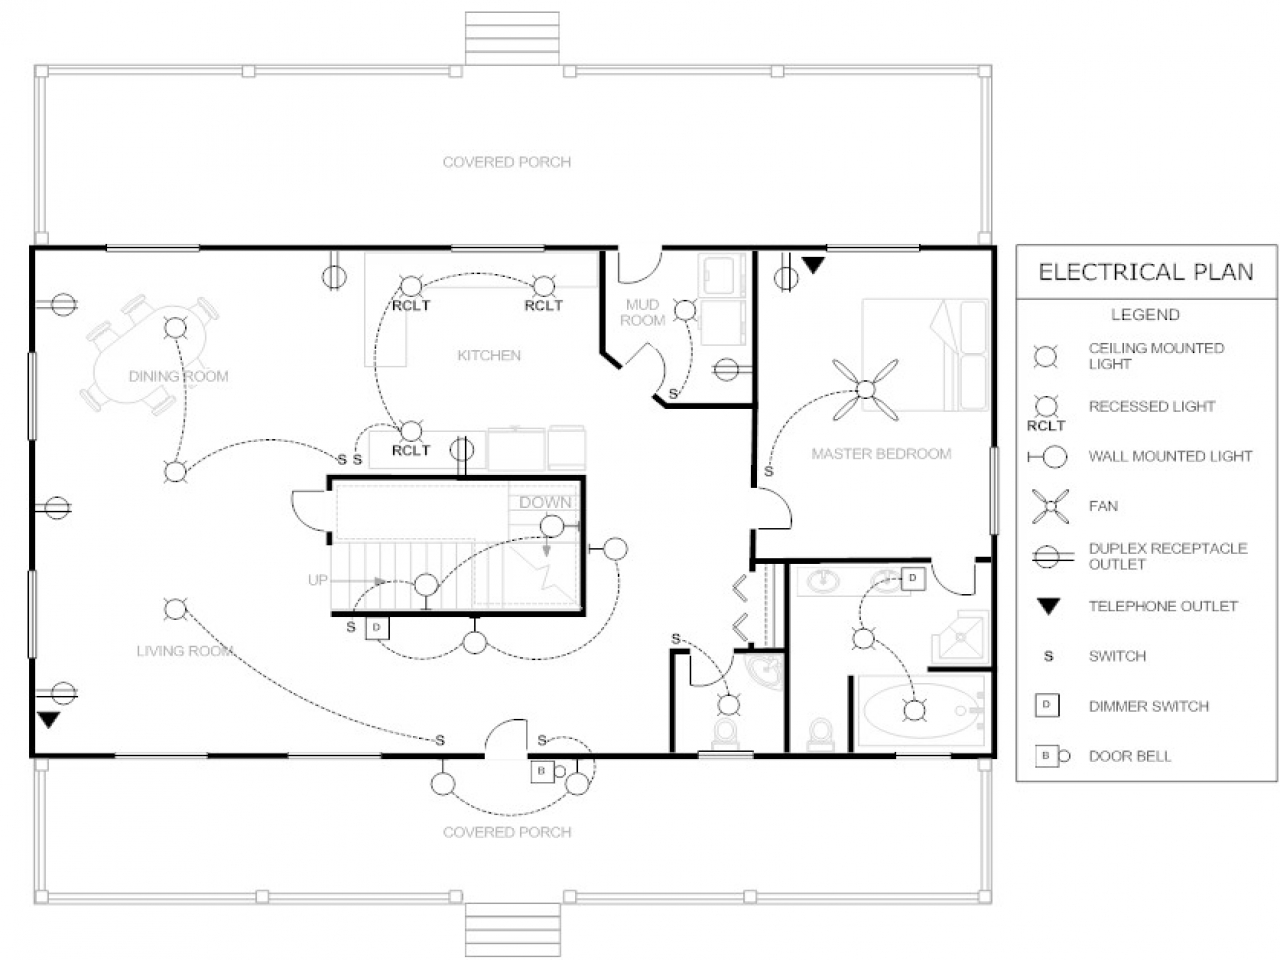 Electrical floor plan drawing simple floor plan electrical for Residential building plans dwg